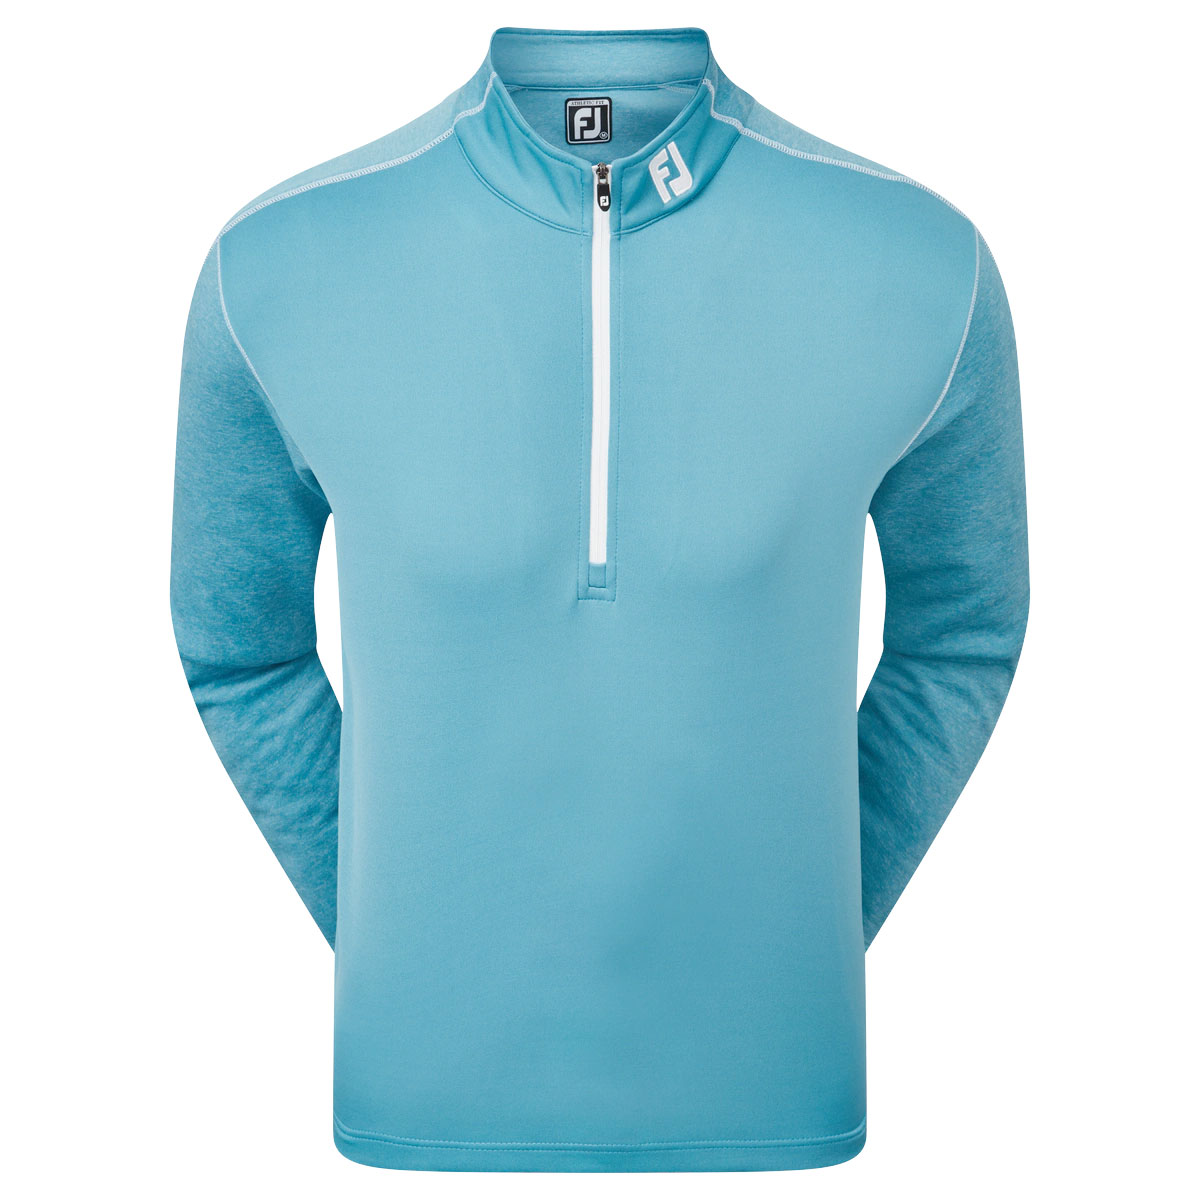 FootJoy Tonal Heather Chill-Out Mens Golf Pullover  - Storm Blue